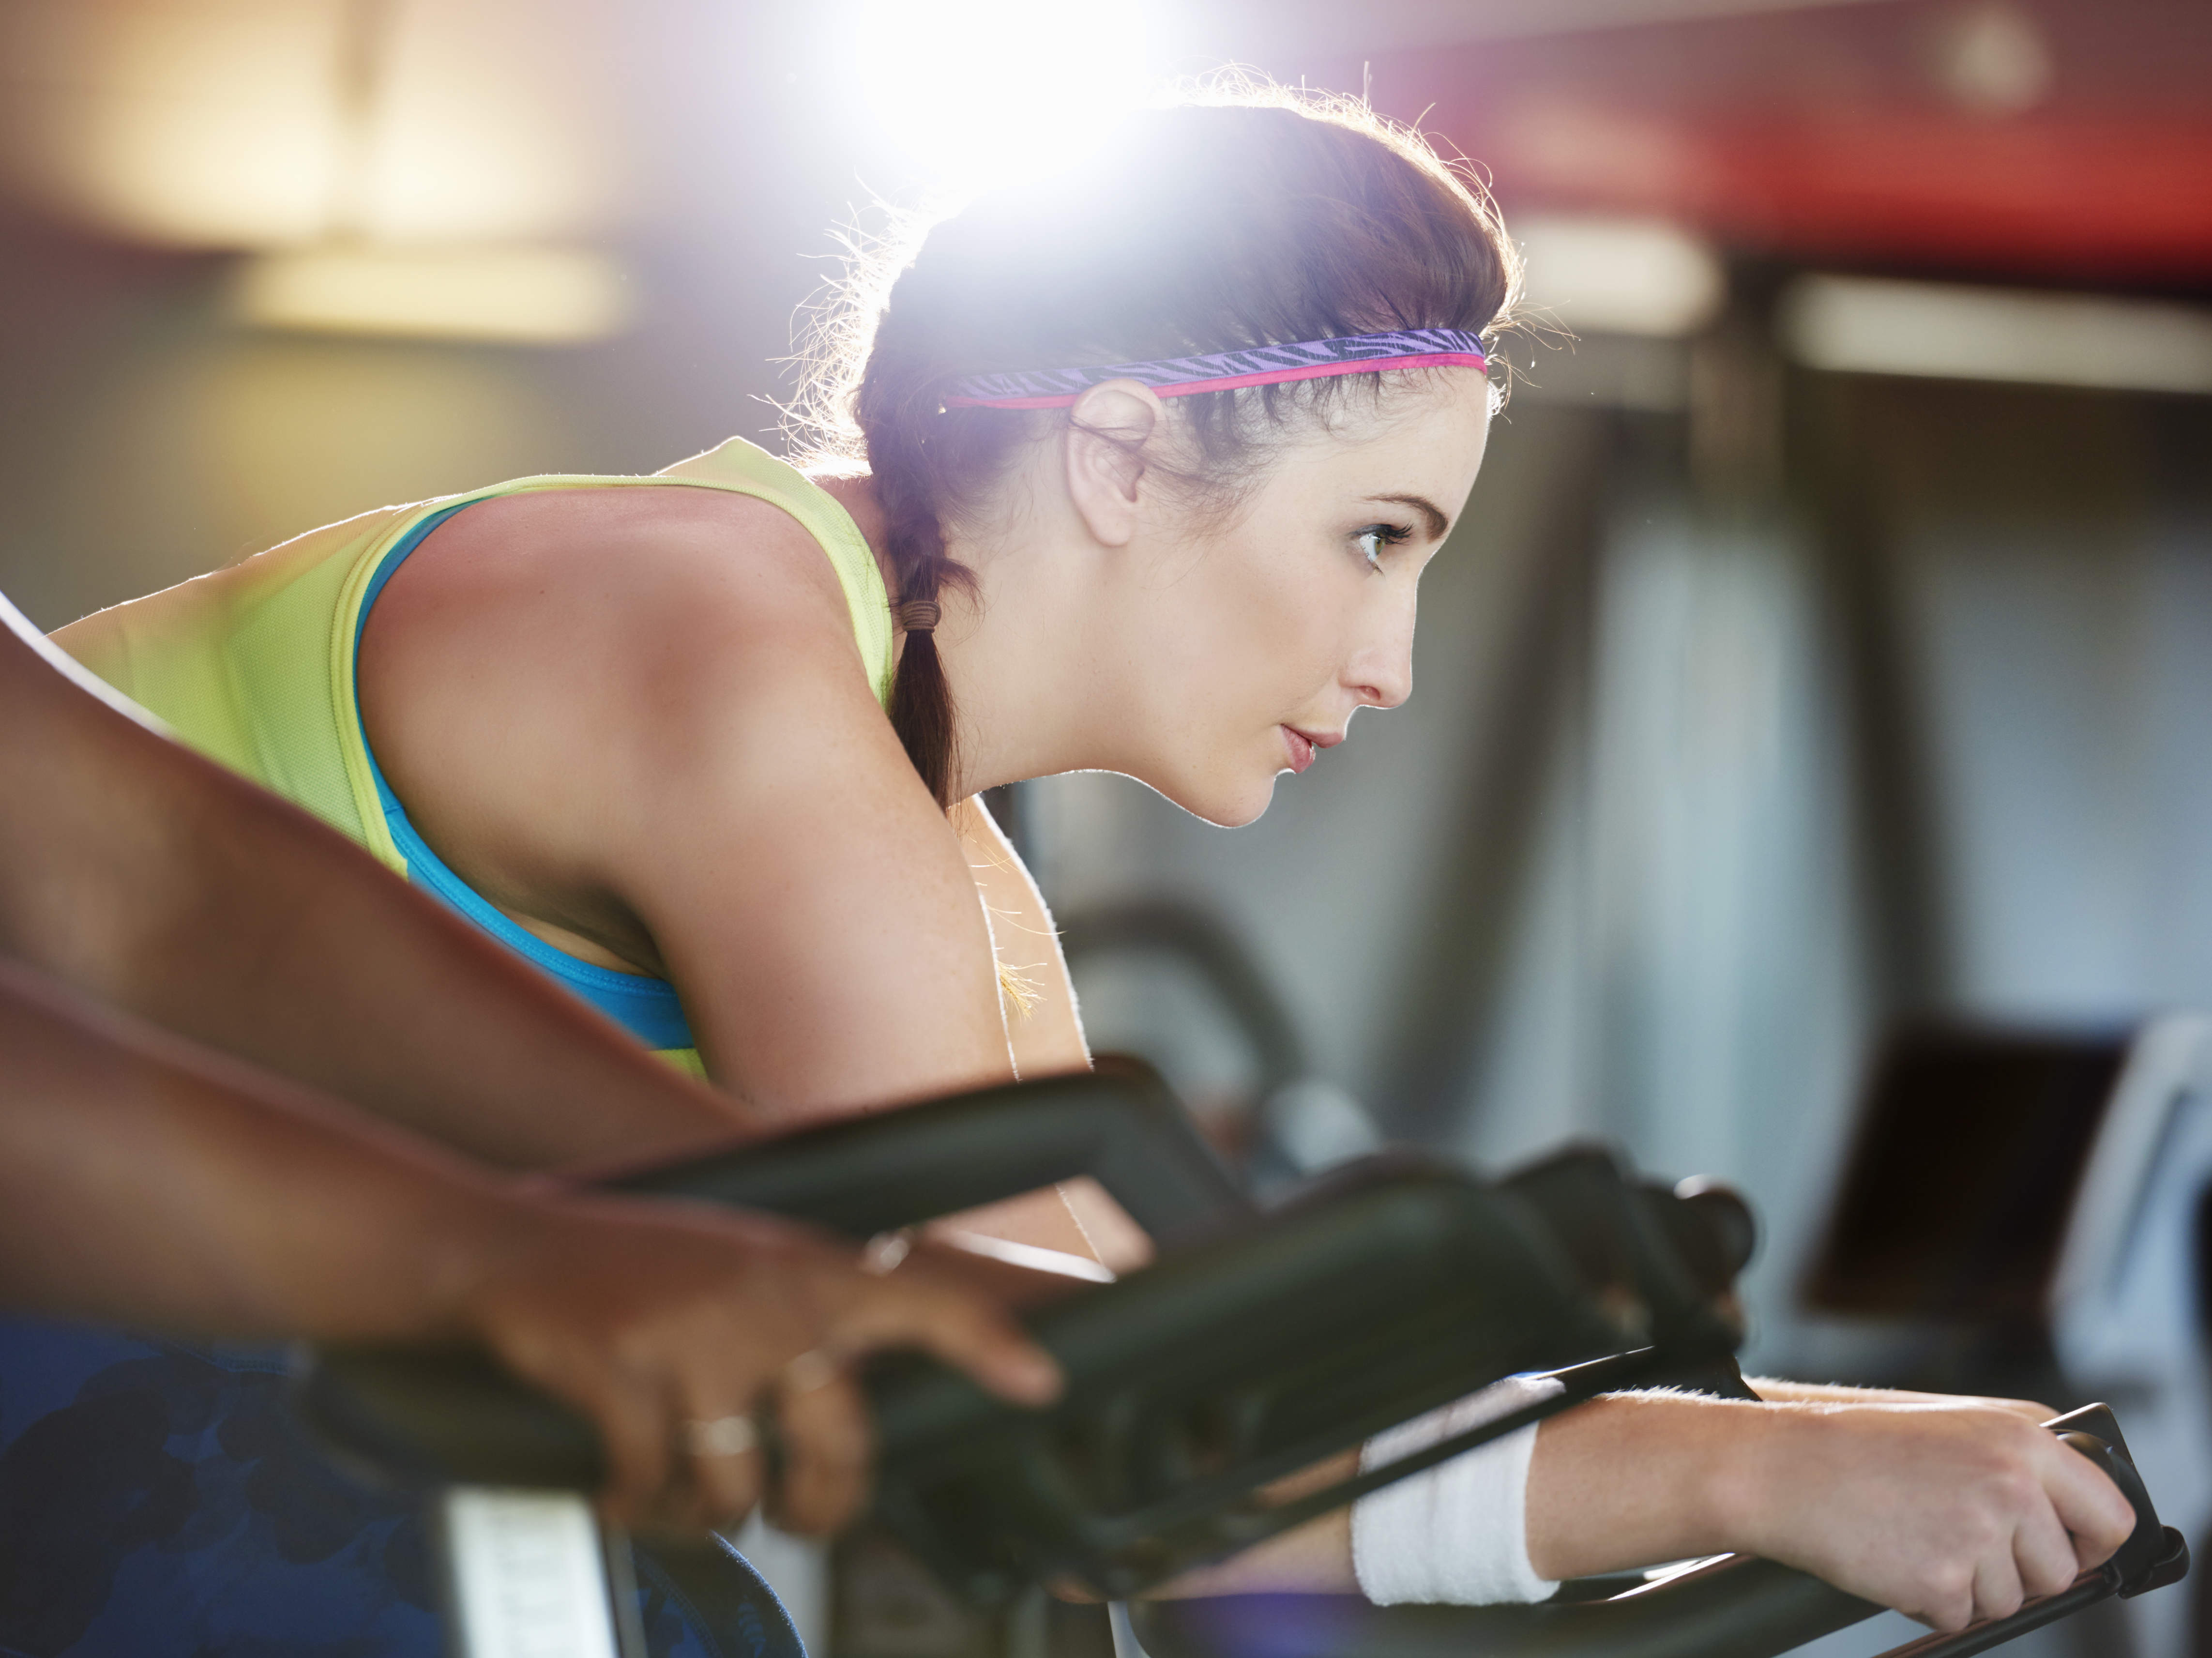 2bf0cab04a8f Infections You Can Catch at the Gym - Health